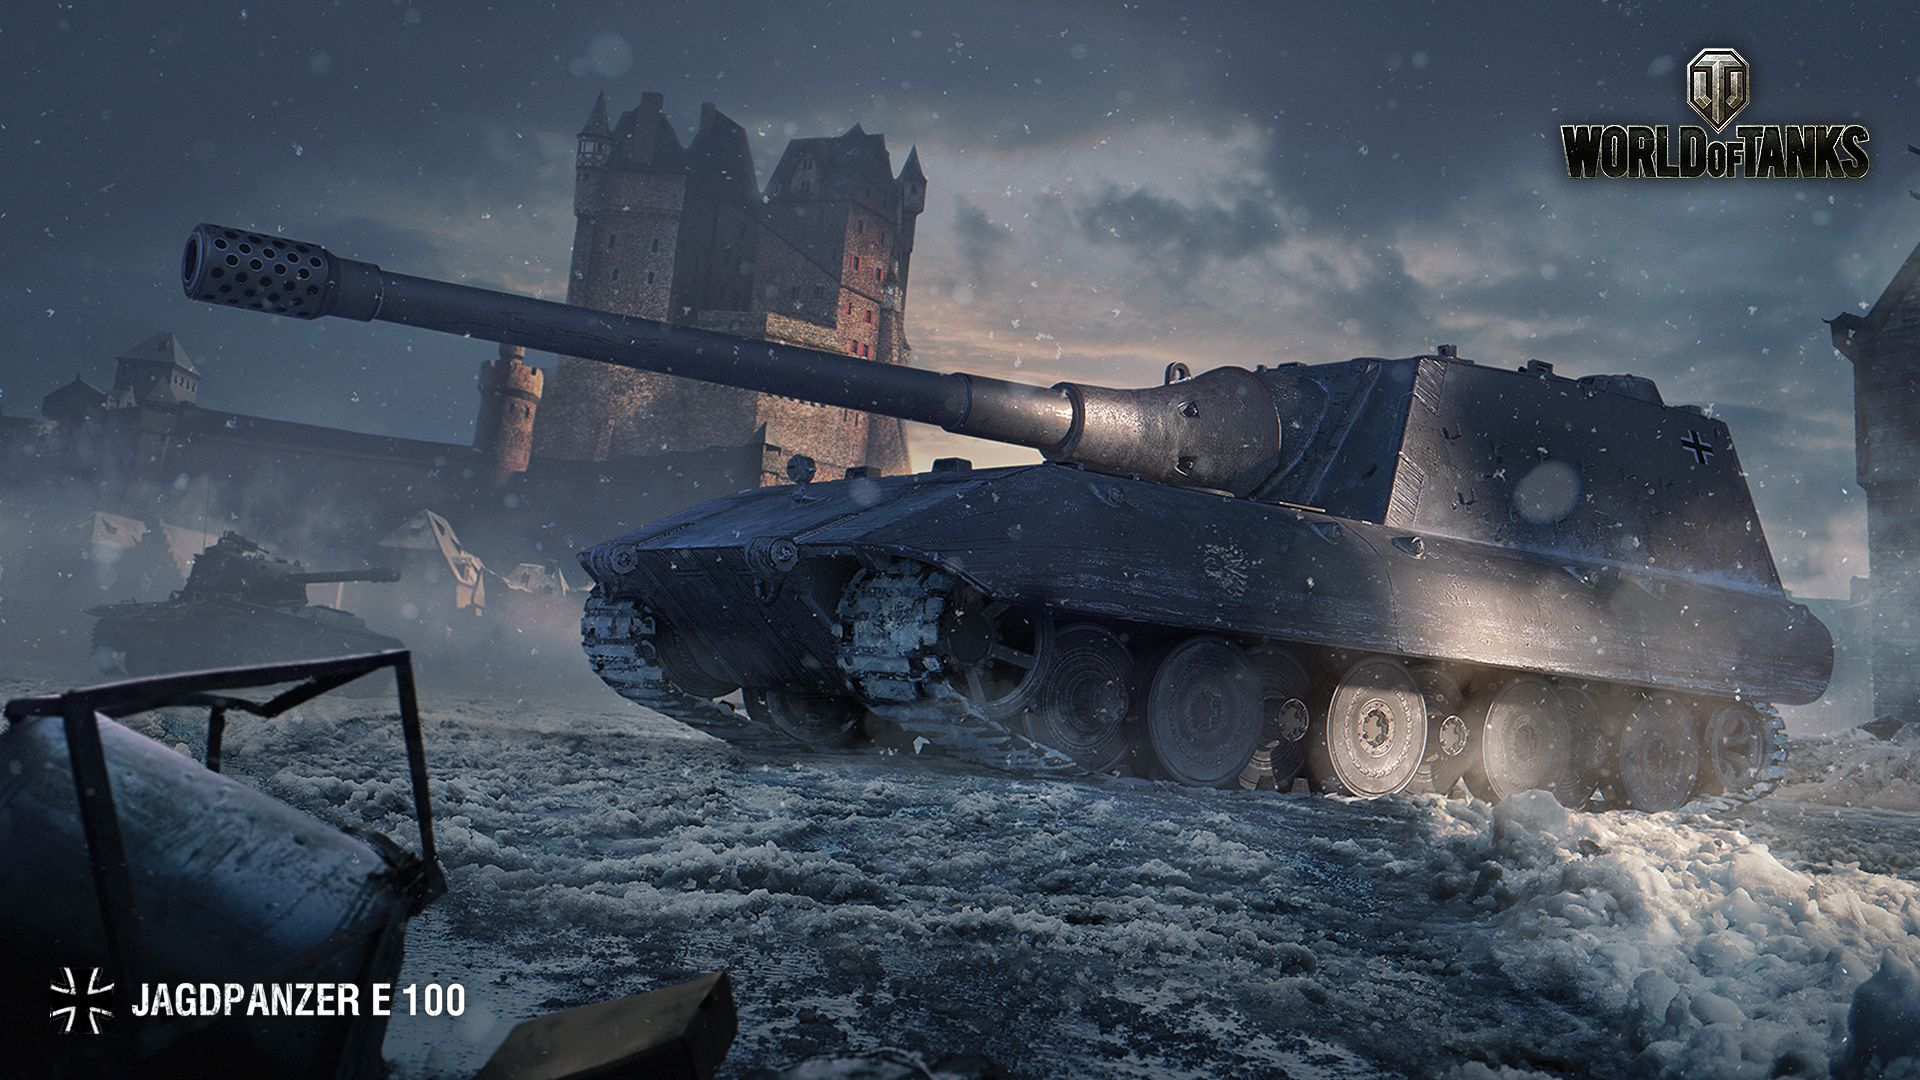 World Of Tanks Online Game Wallpapers 65 Wallpapers